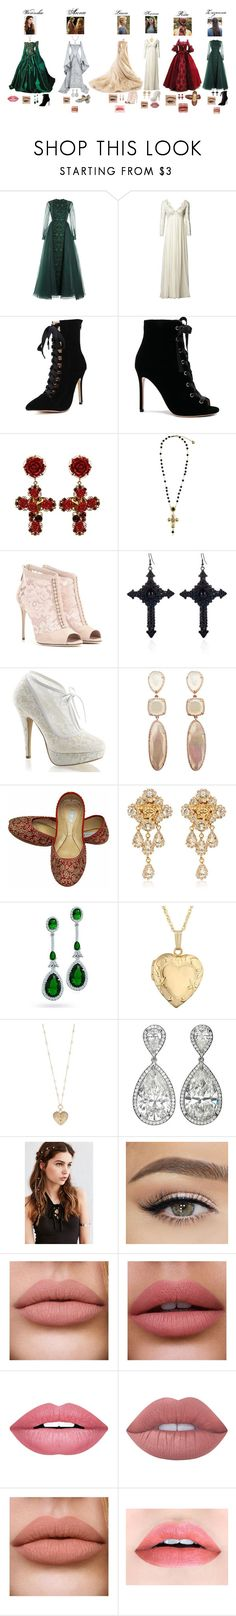 """""""Outfit #68 - Medieval #2"""" by mientowaaa ❤ liked on Polyvore featuring Valentino, Matthew Williamson, Gianvito Rossi, Dolce&Gabbana, River Island, Versace, Bling Jewelry, Reeds Jewelers, Betsey Johnson and REGALROSE"""